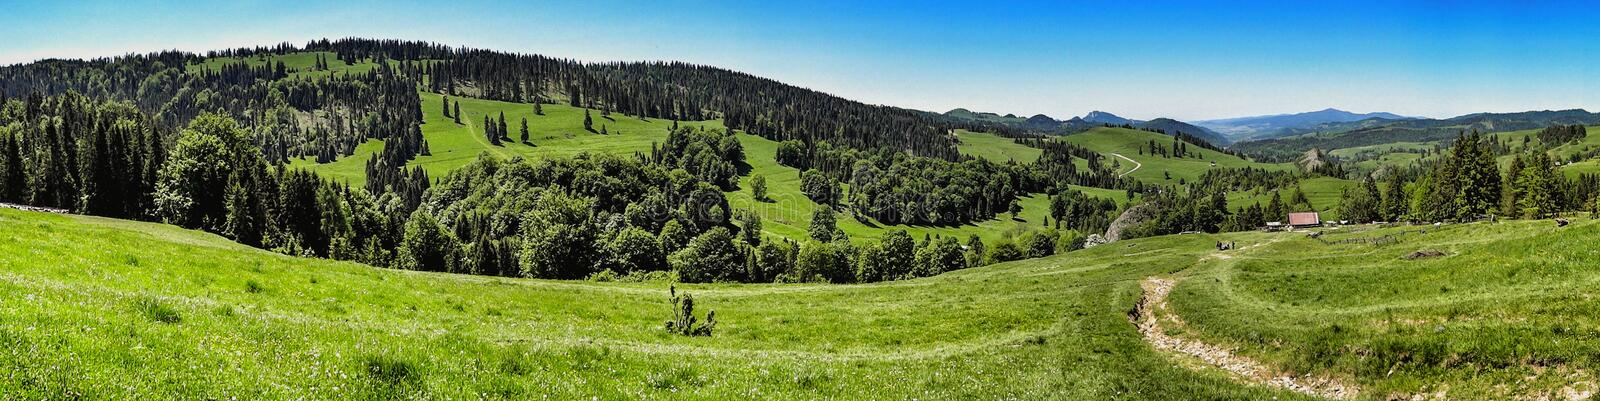 Wide panorama of Pieniny range in southern Poland. Landscape of Pieniny and Gorce mountain range in beskids in Poland. Pieniny Mountains in the south of Poland royalty free stock image